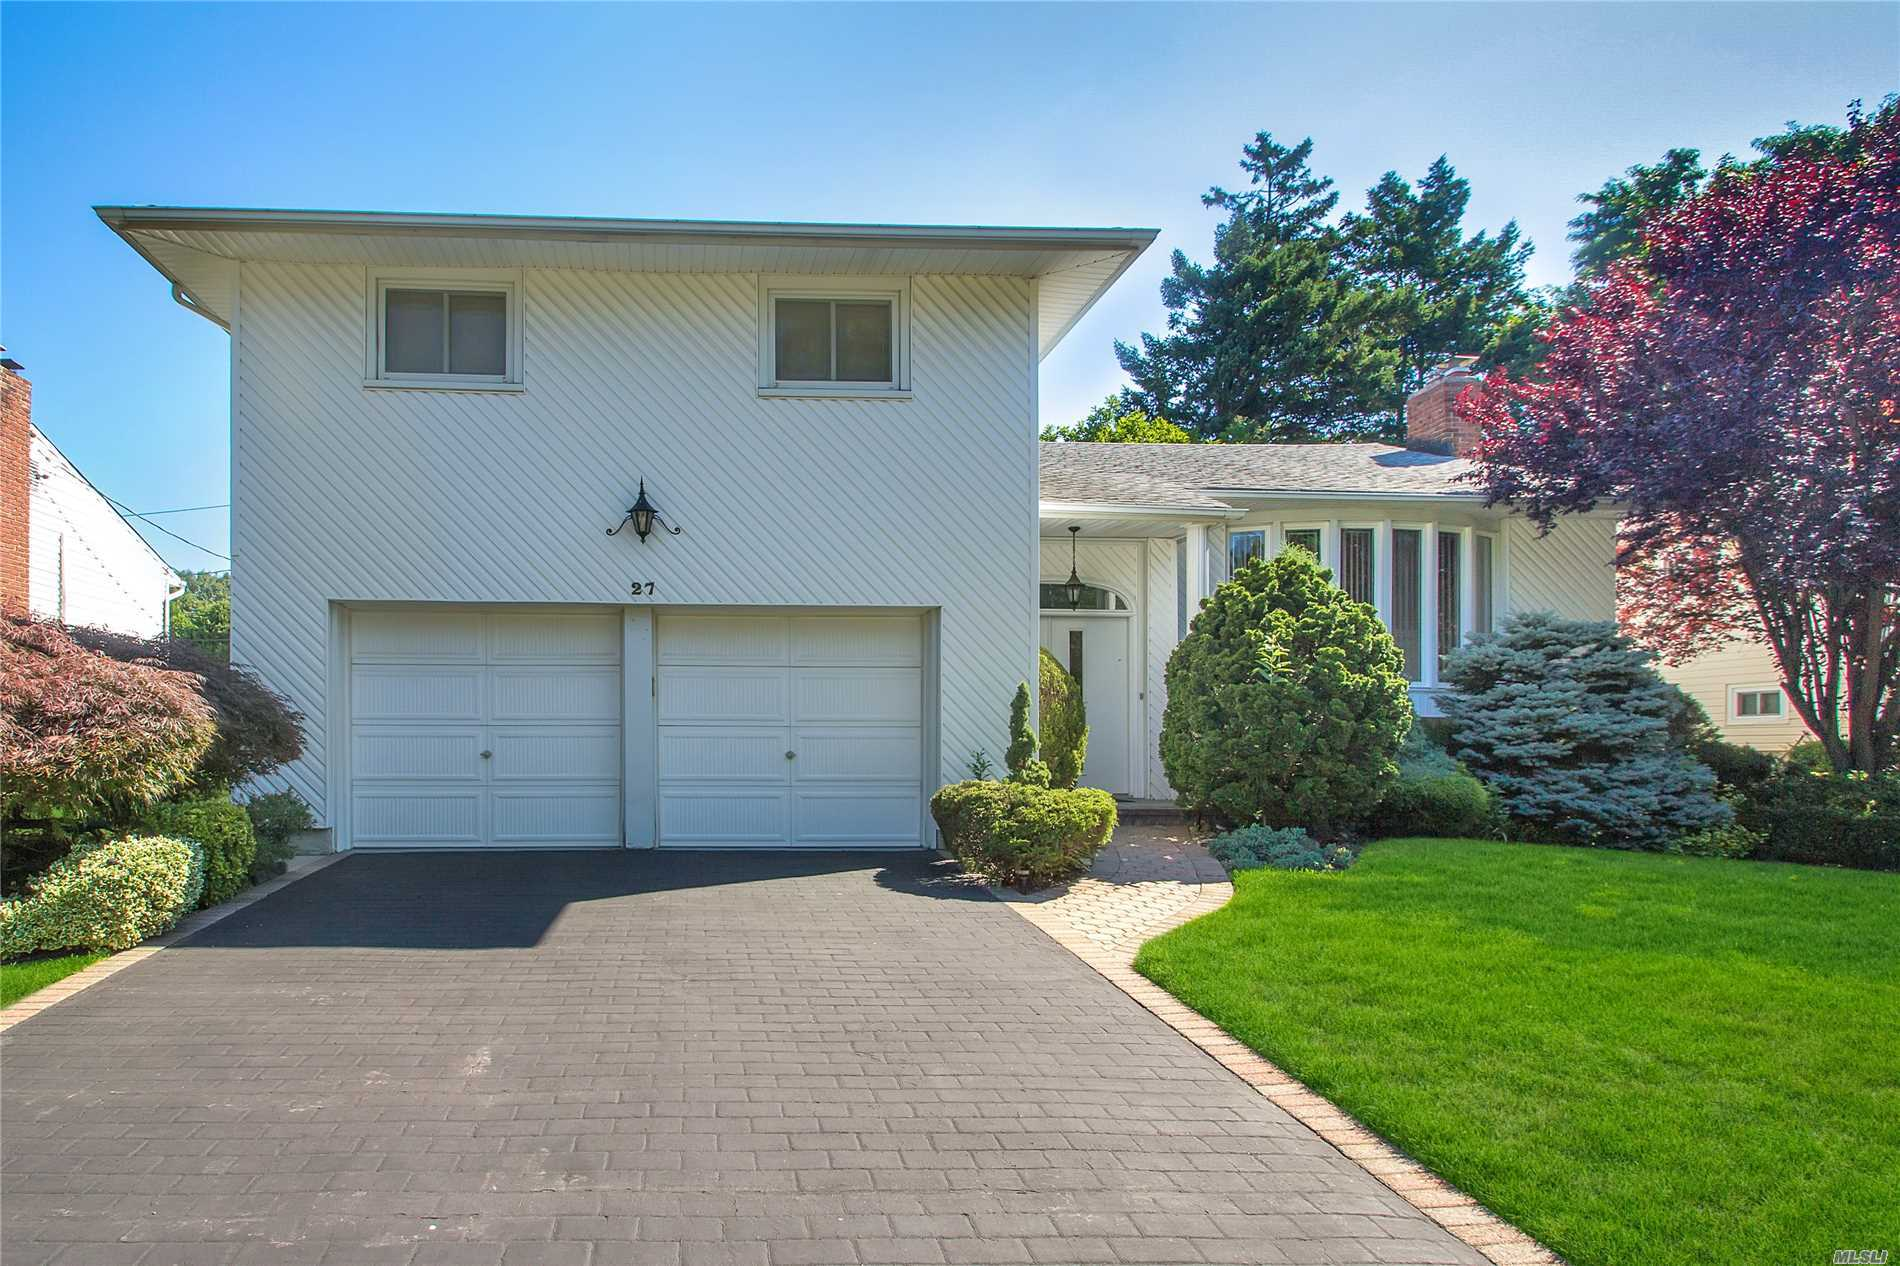 Located In Desirable Woodbury Knolls. Spacious 4 Br 2.5 Bath Split.Lr With Vaulted Ceiling And Over-Sized Formal Dining Room.Eat In Kitchen With Ose. Den With Fireplace. Main Level Bedroom, Powder Room,  Laundry & Sliders To Patio.Hardwood Floor. New Central Air Conditioner.